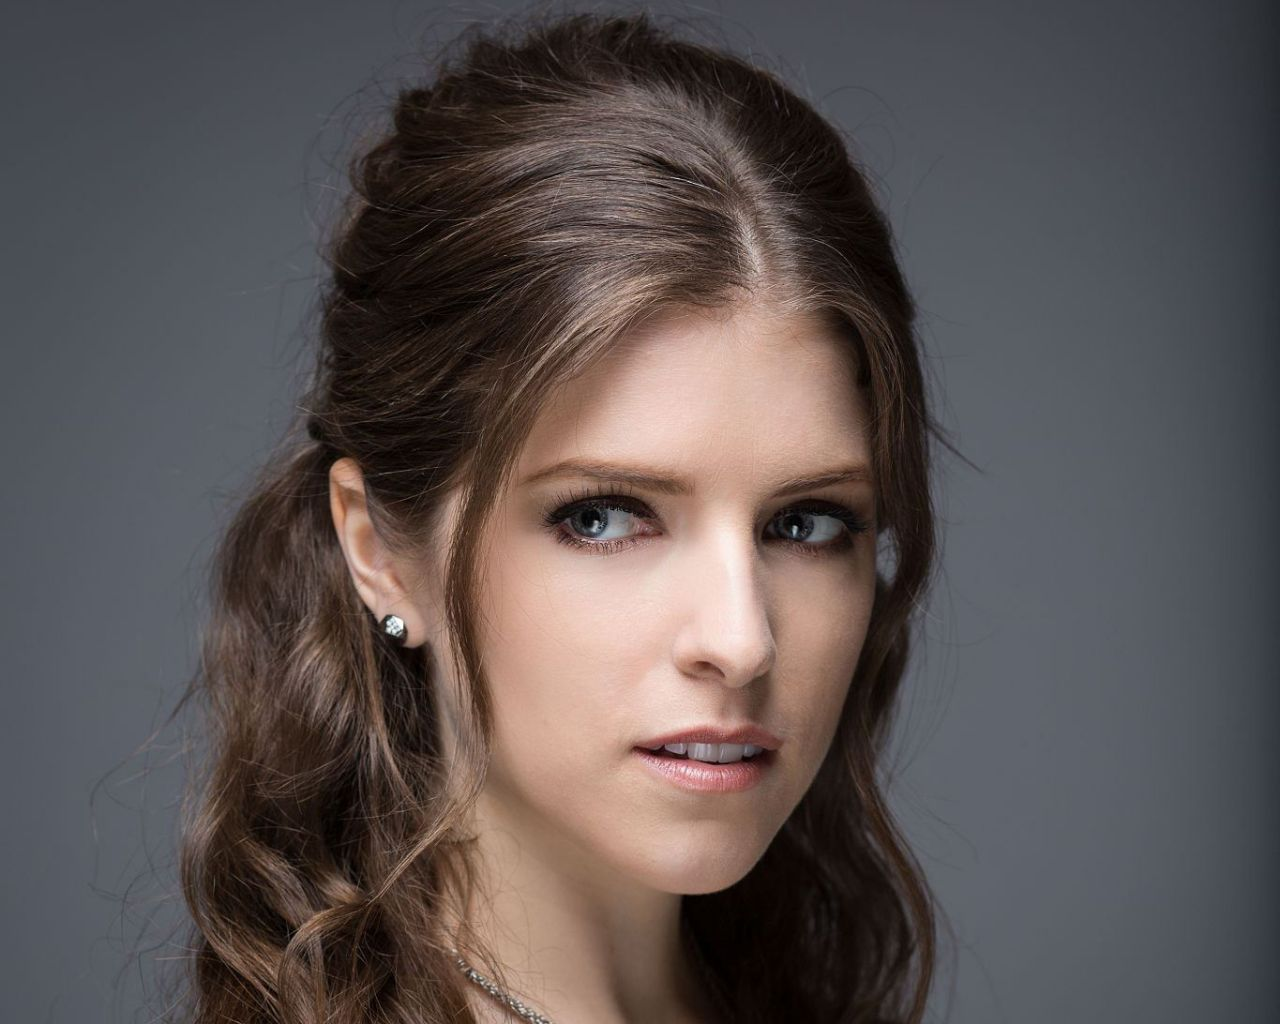 Anna Kendrick Photoshoot For The Hollywood Reporter Cannes